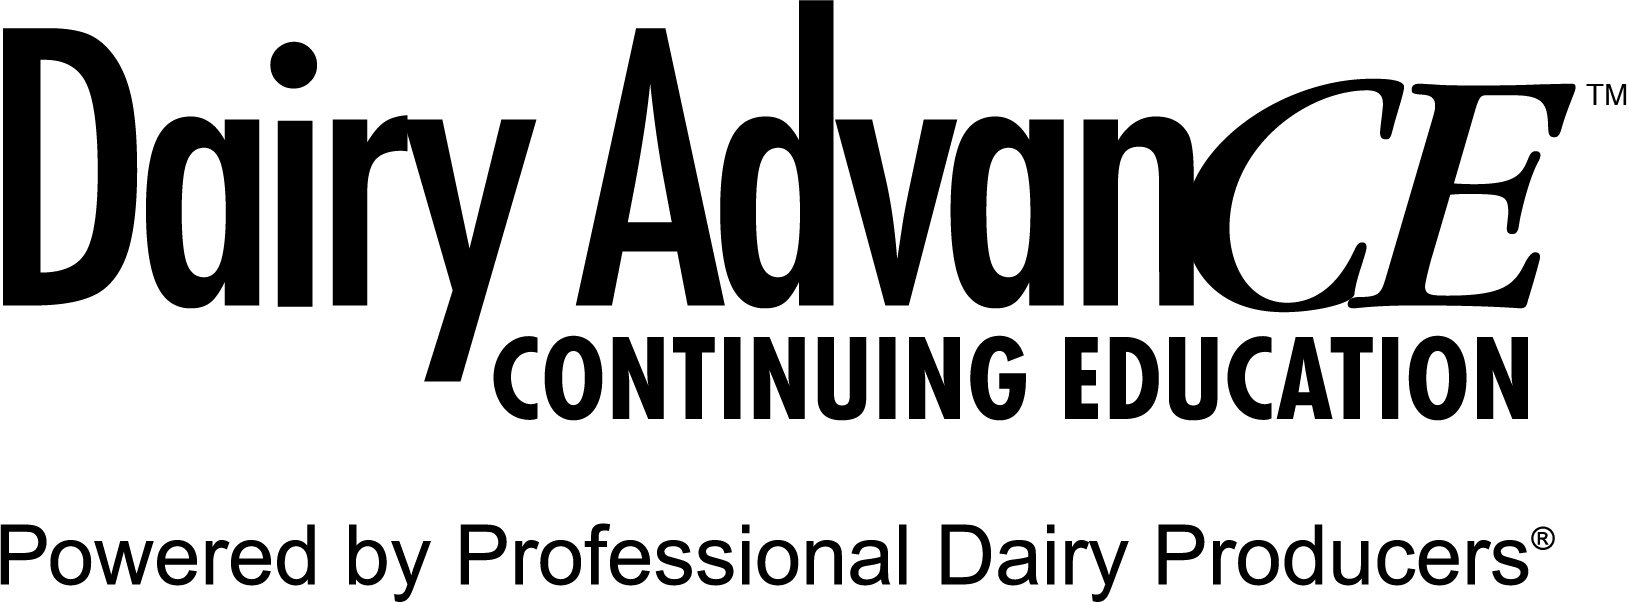 Dairy AdvanCE